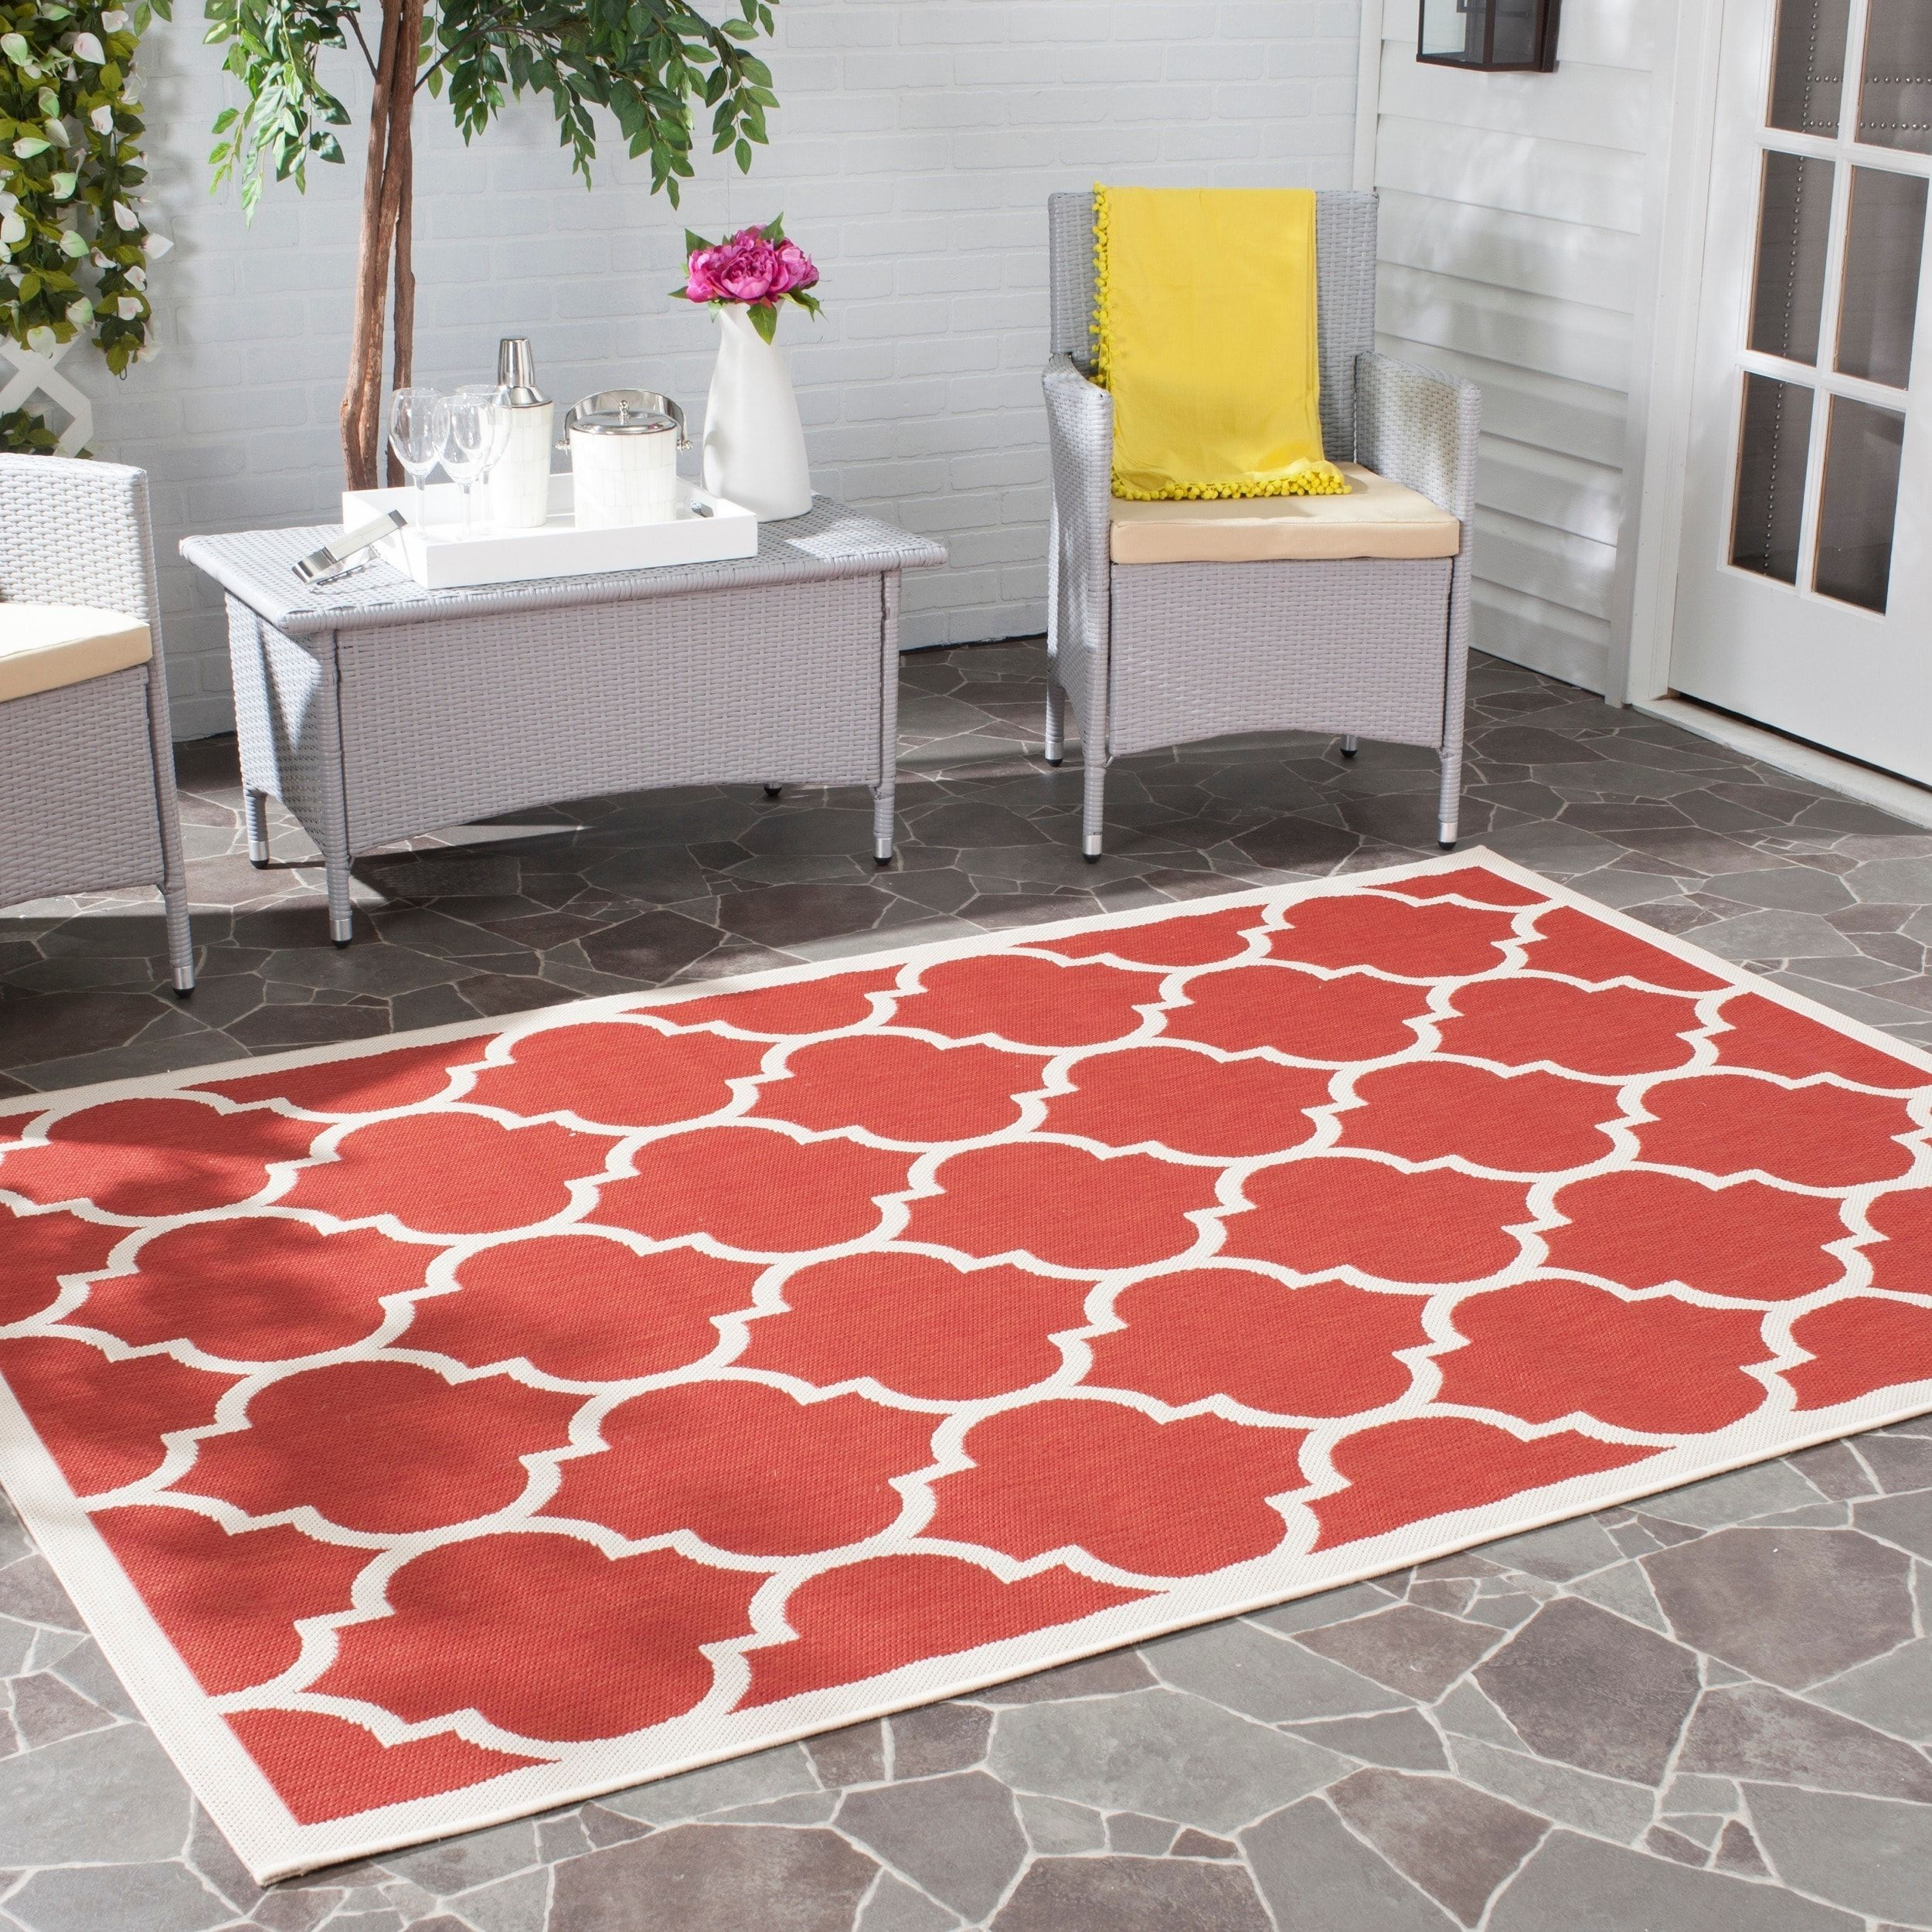 Safavieh Courtyard Moroccan Pattern Red Bone Indoor Outdoor Rug